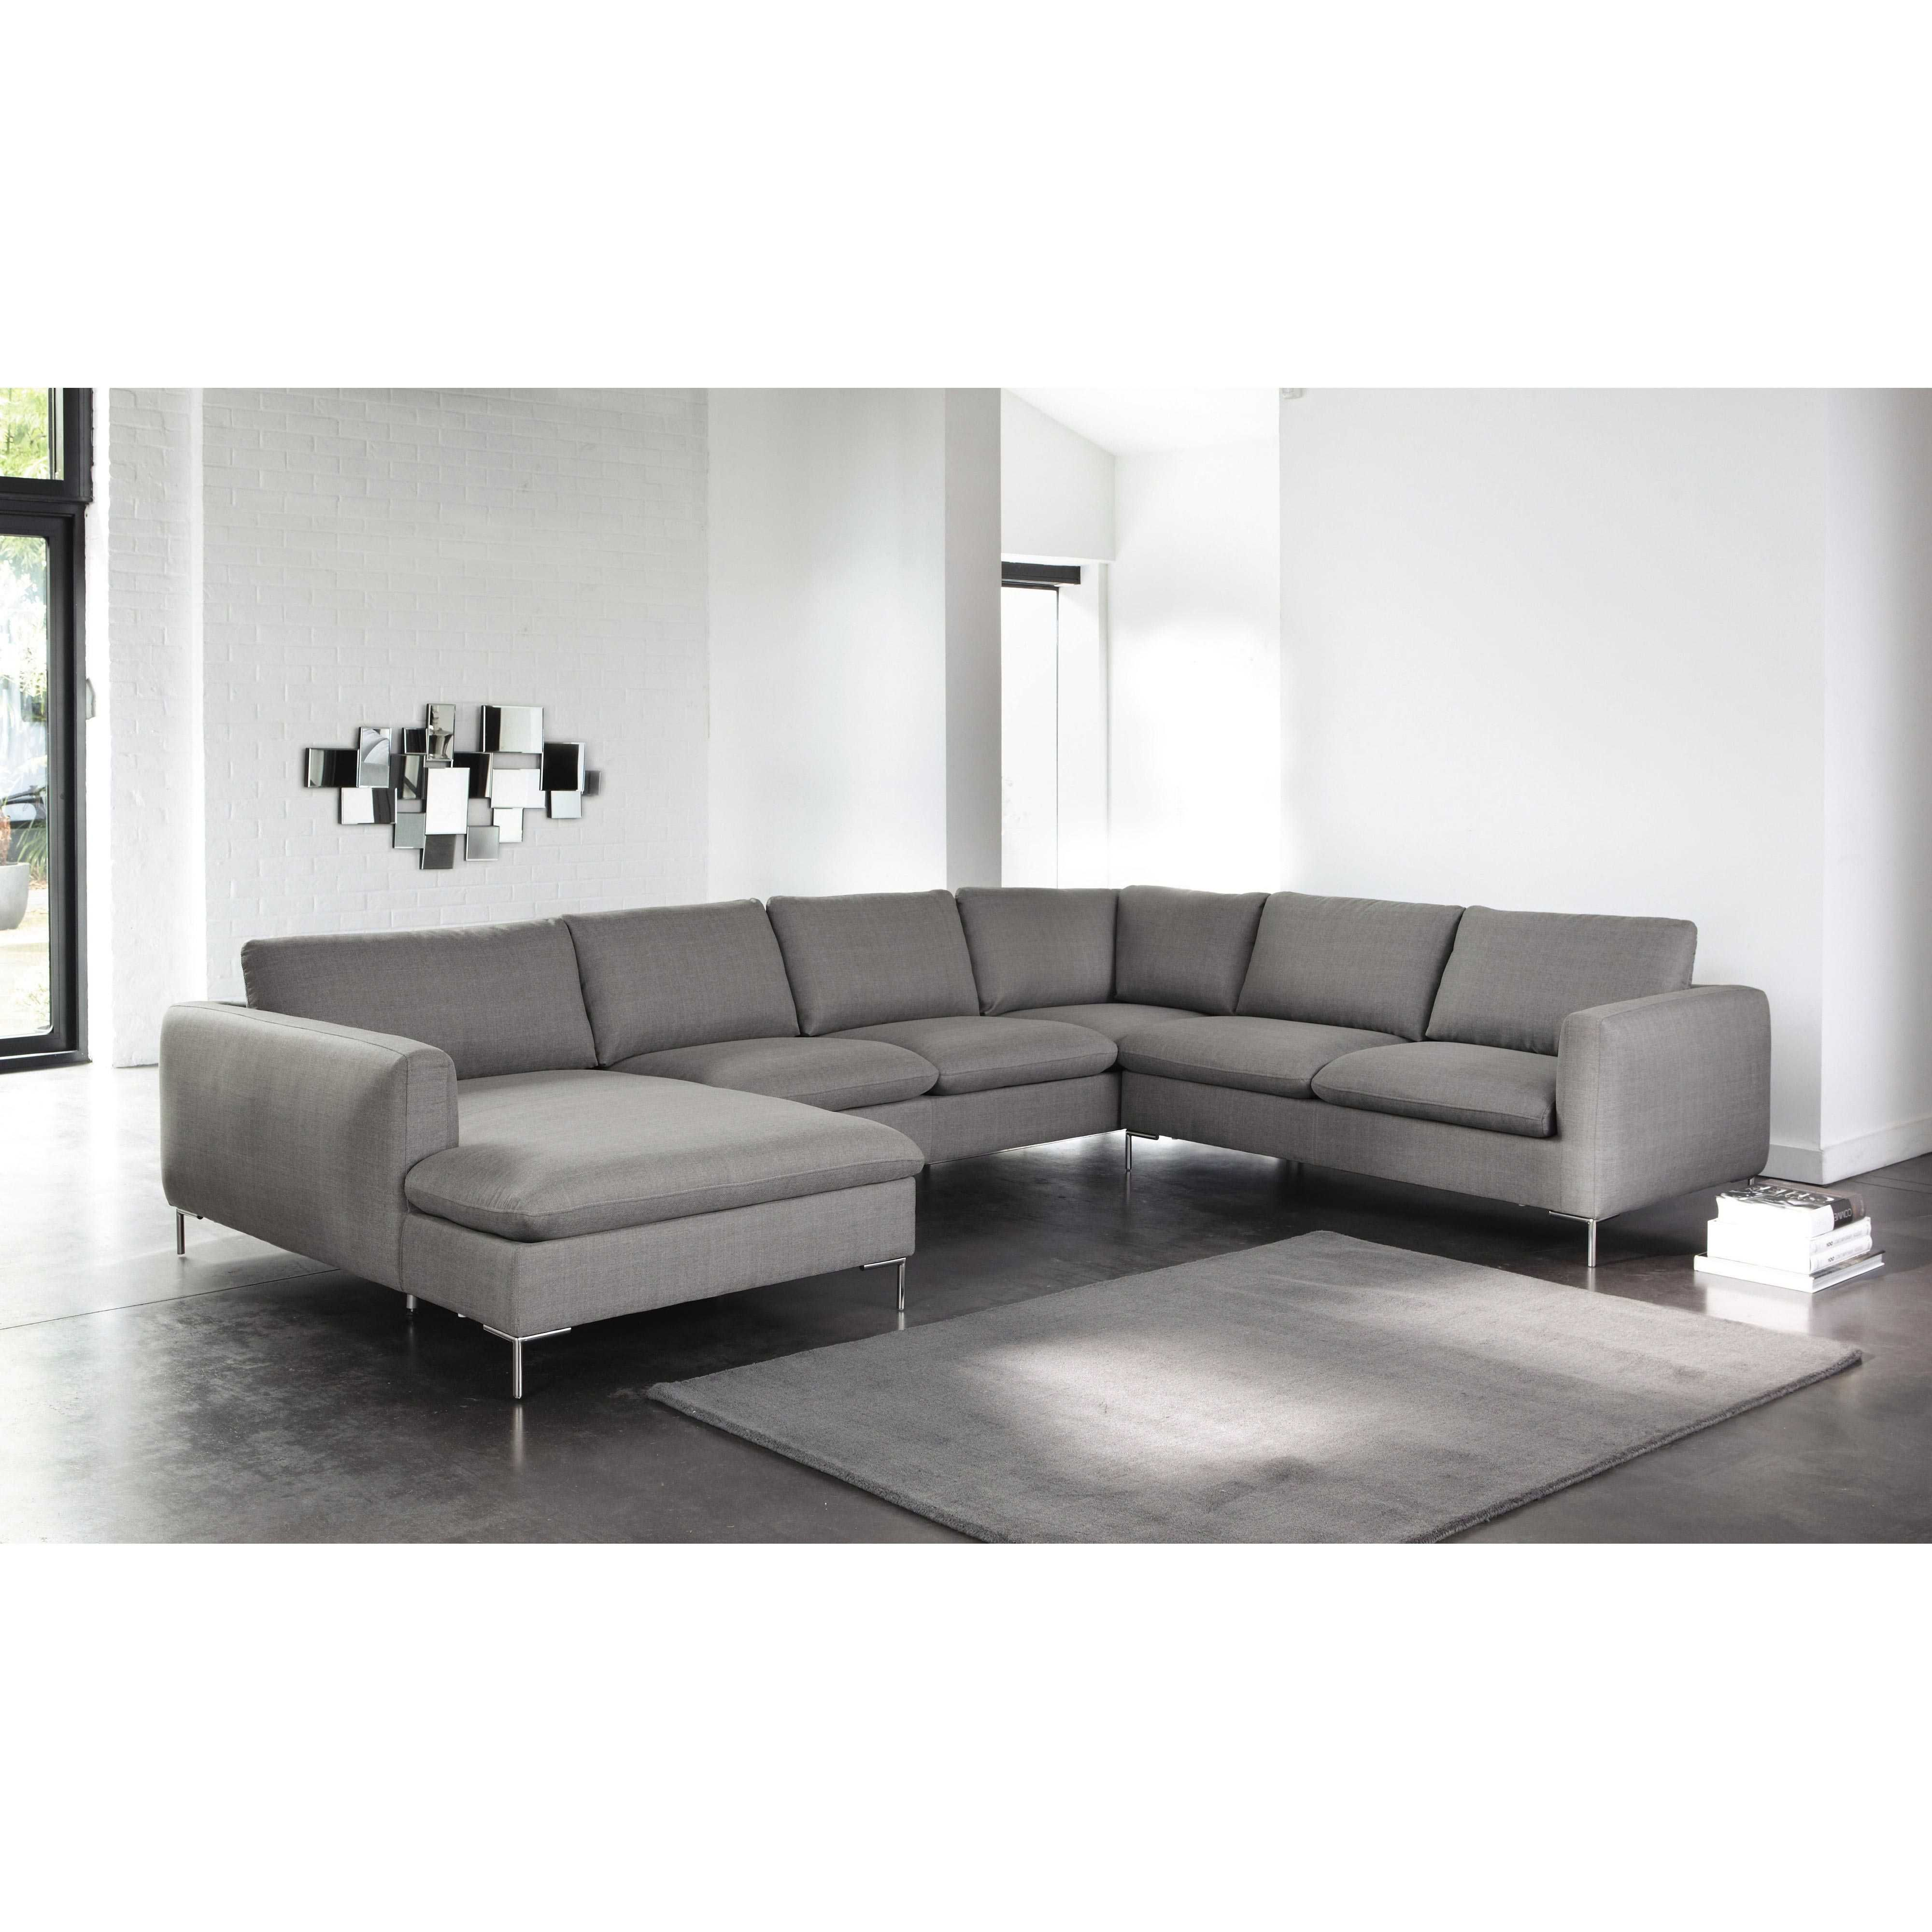 8 seater fabric corner sofa in light grey City